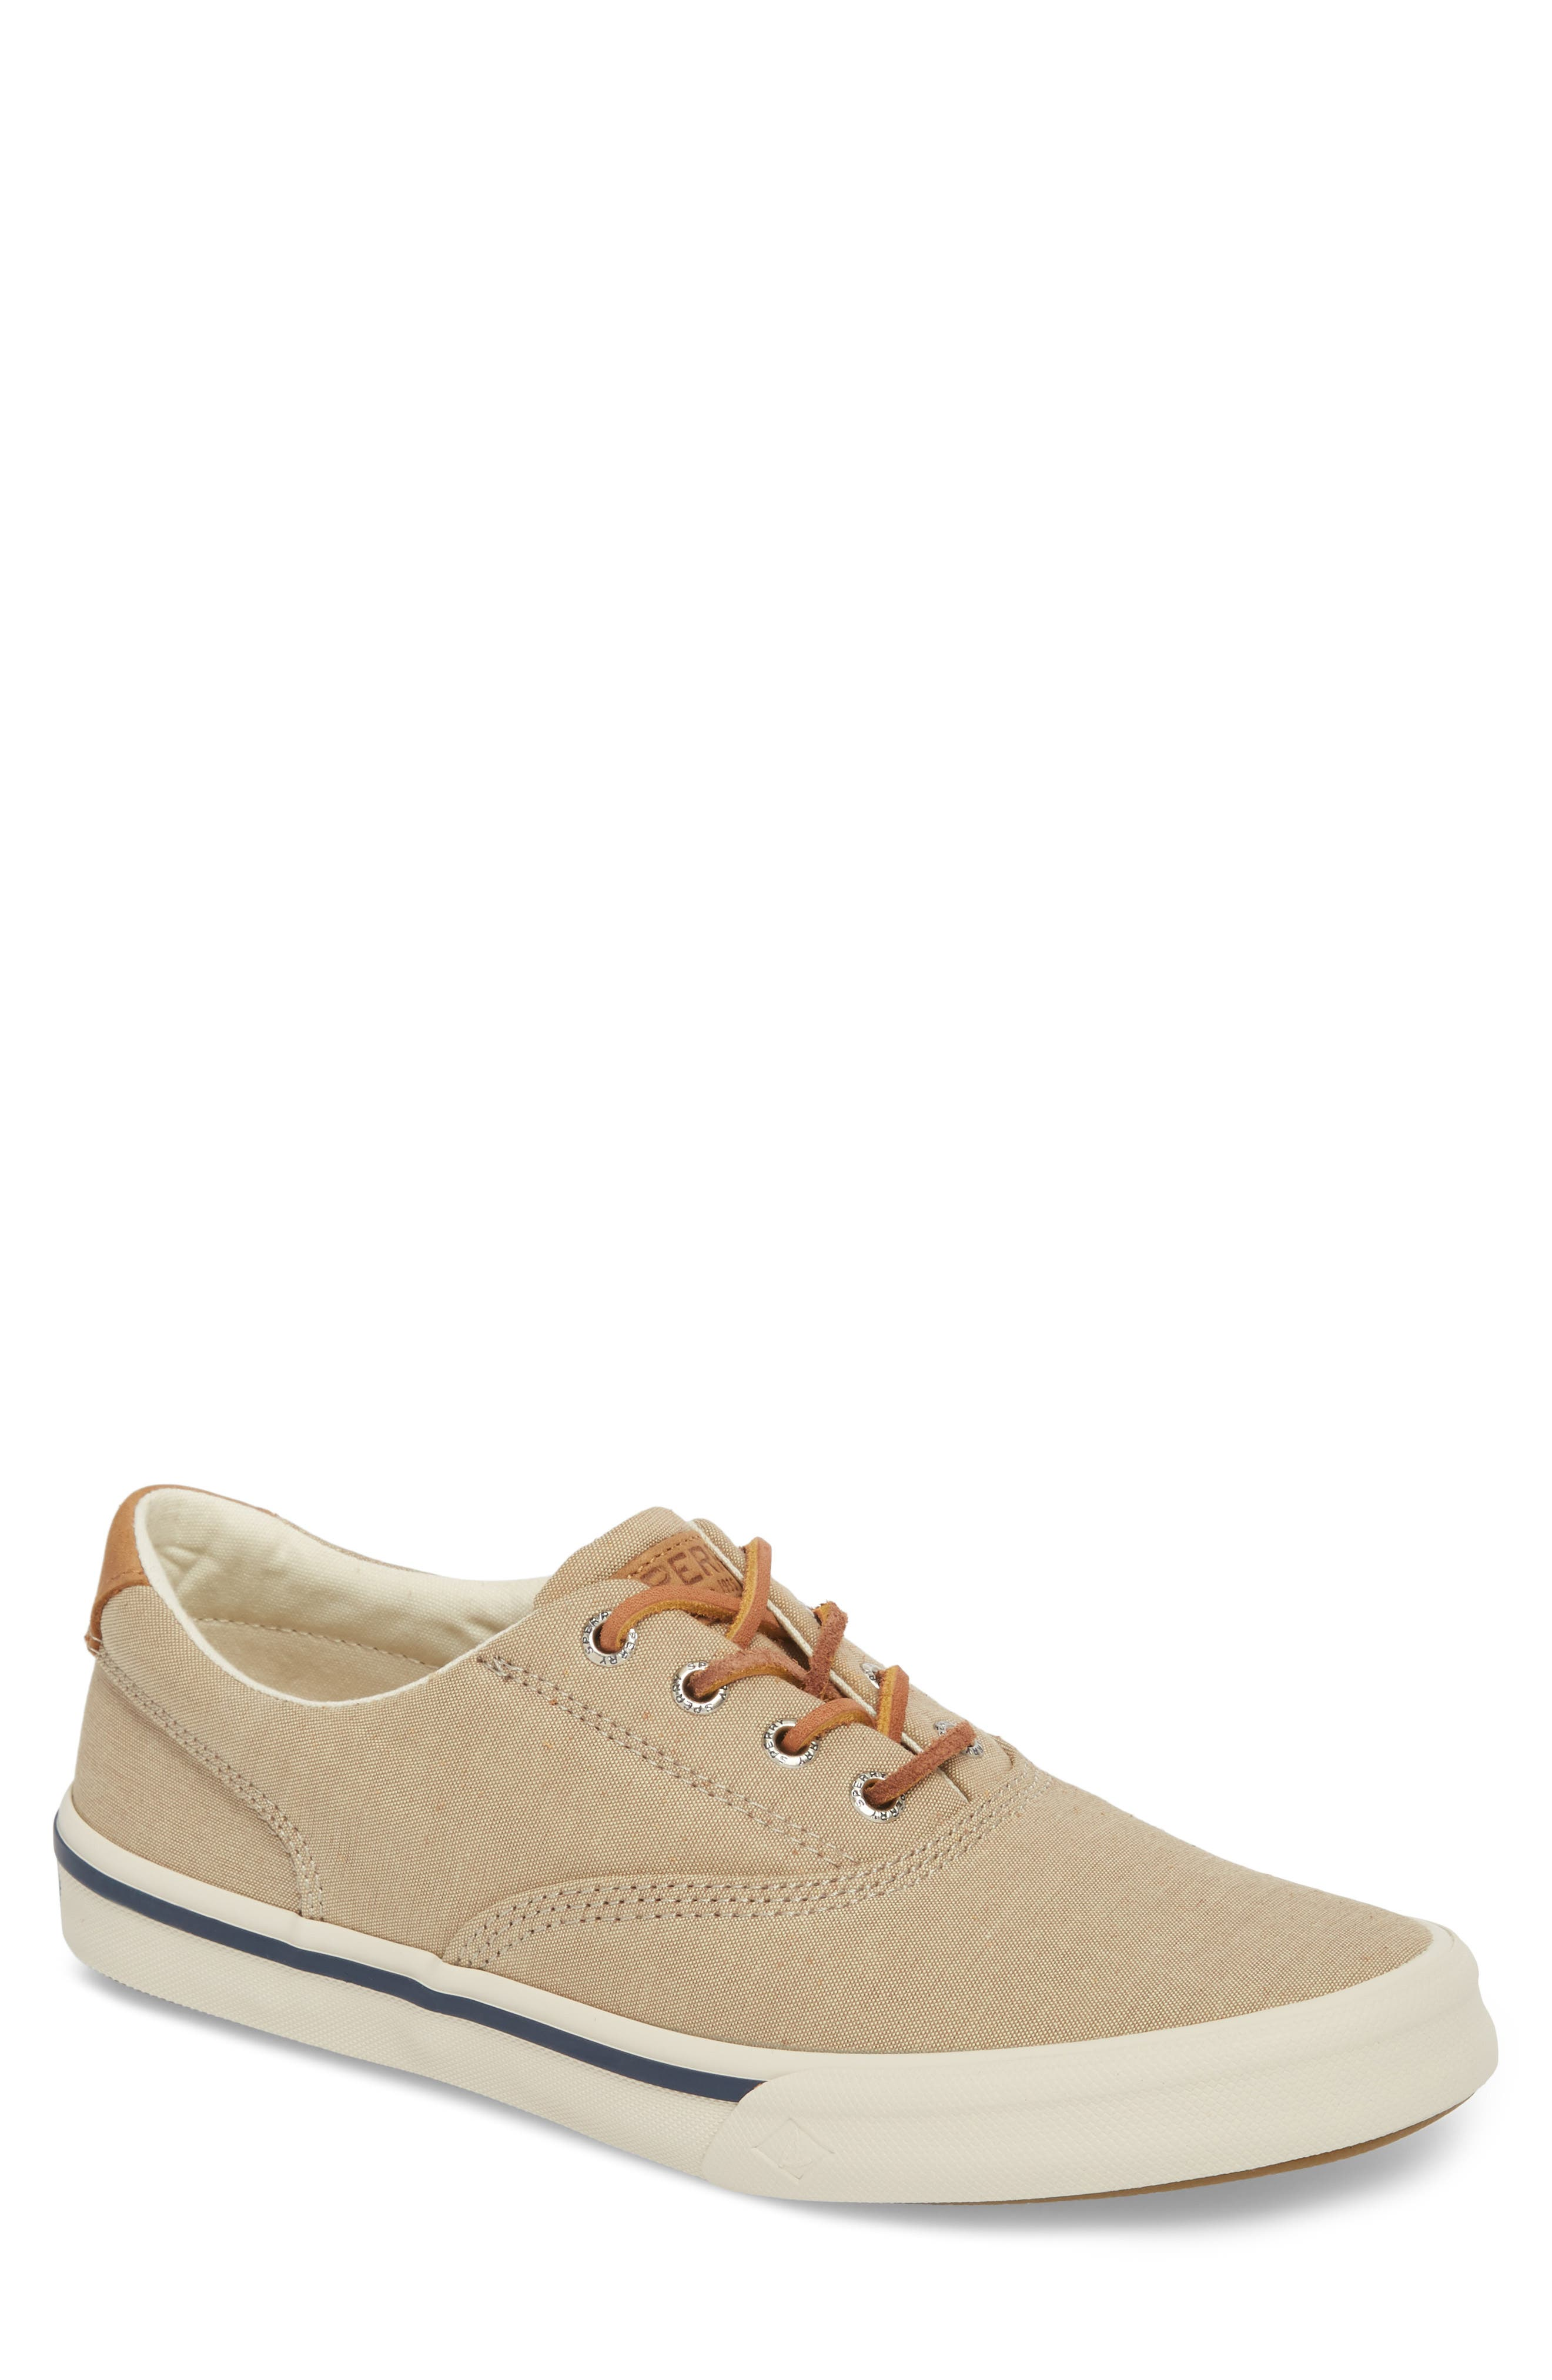 Striper 2 CVO Sneaker,                             Main thumbnail 1, color,                             Chino Canvas